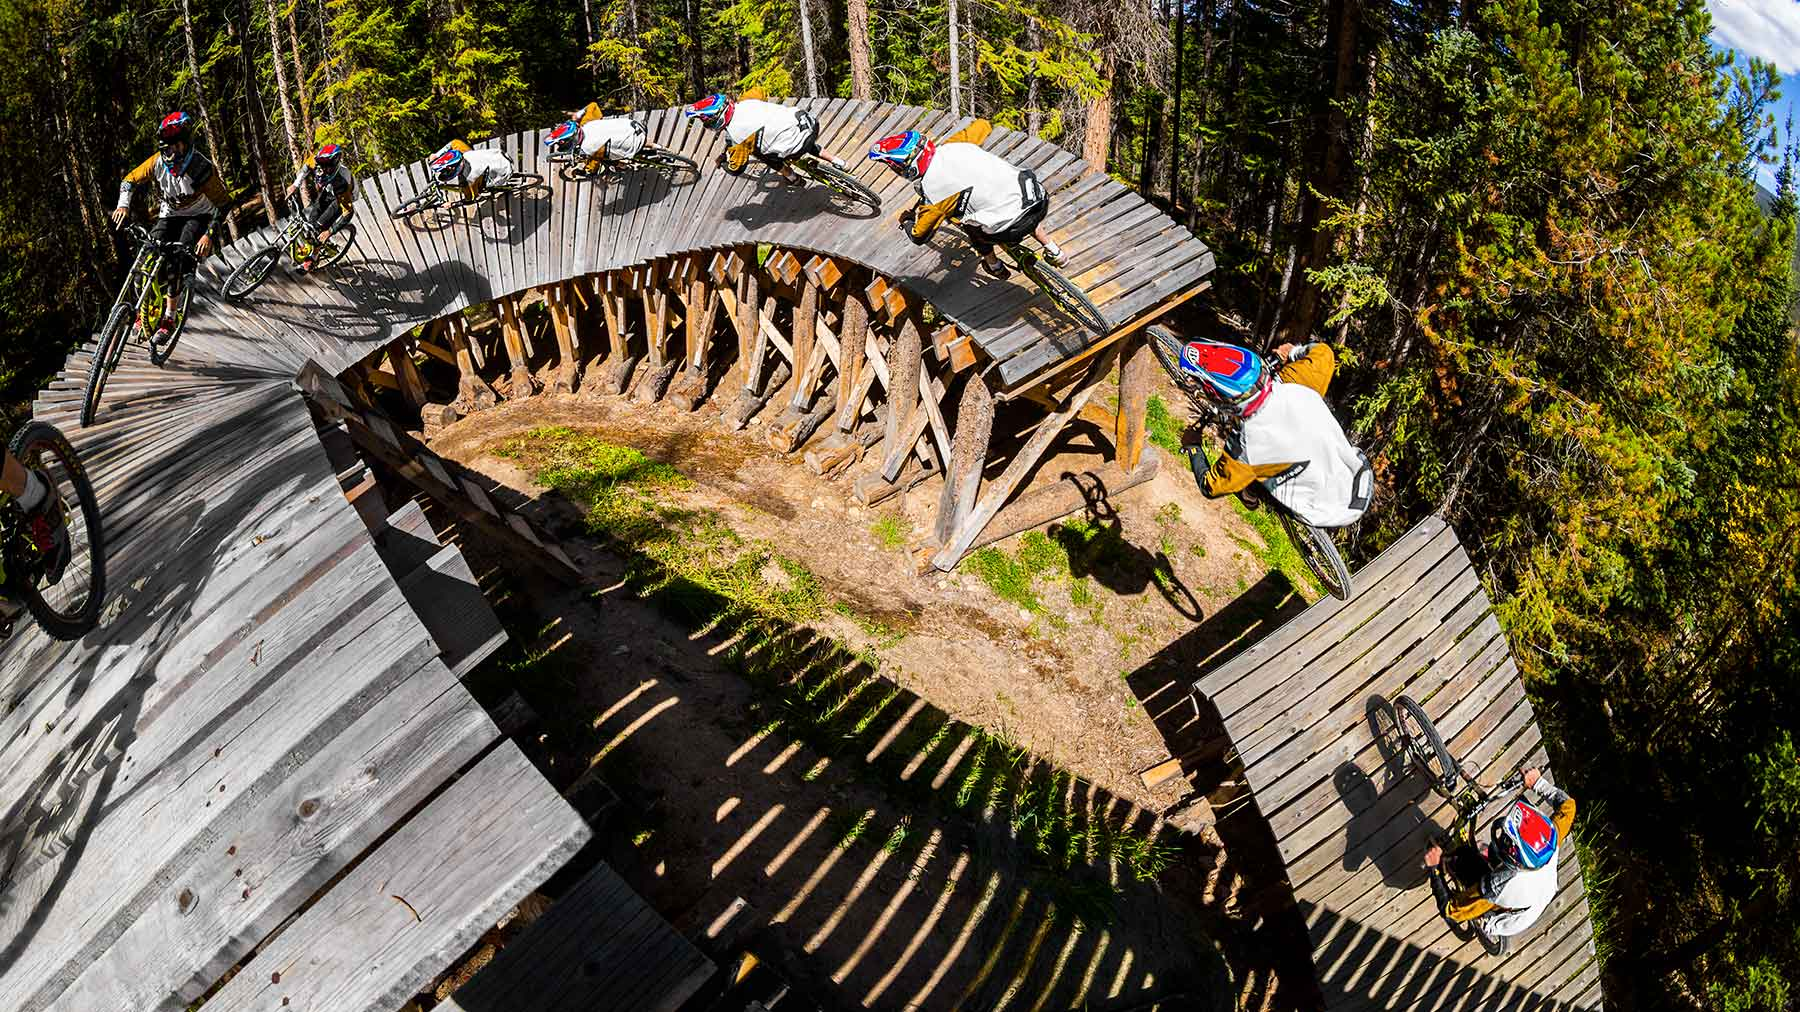 Trestle Bike Park, Winterparkresort.com - Melinda V. Lee, LIV Sothebys, Grand County